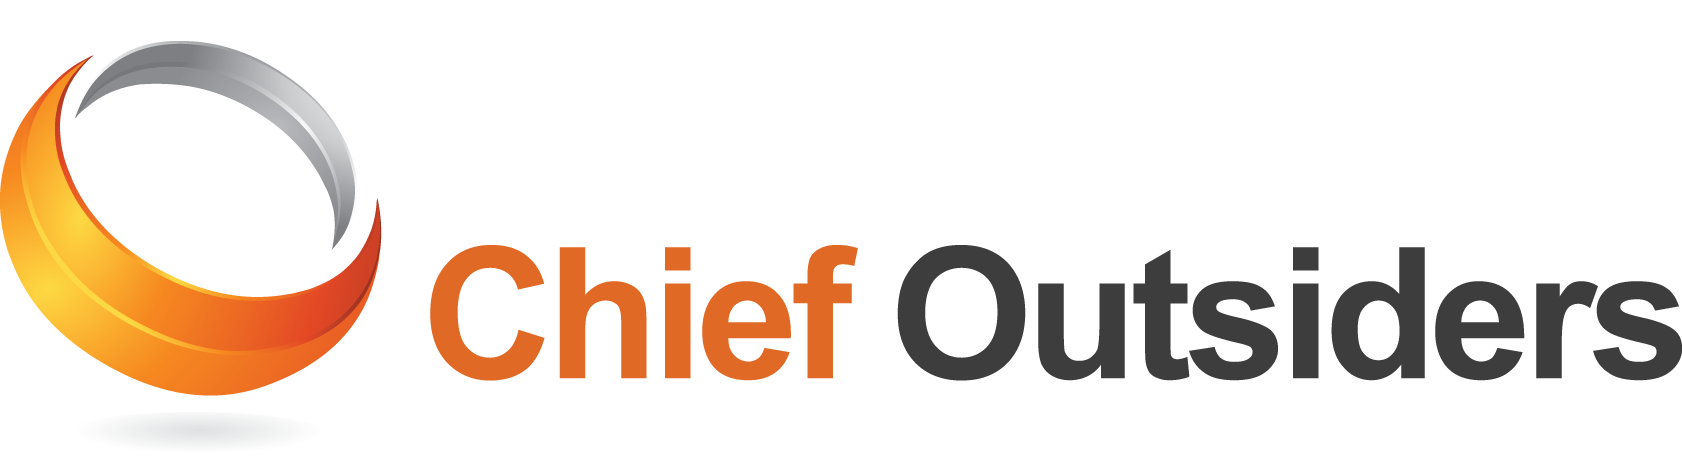 Chief Outsiders Launches New Tool for Private Equity Firms to Improve Growth Capabilities for Portfolio Companies